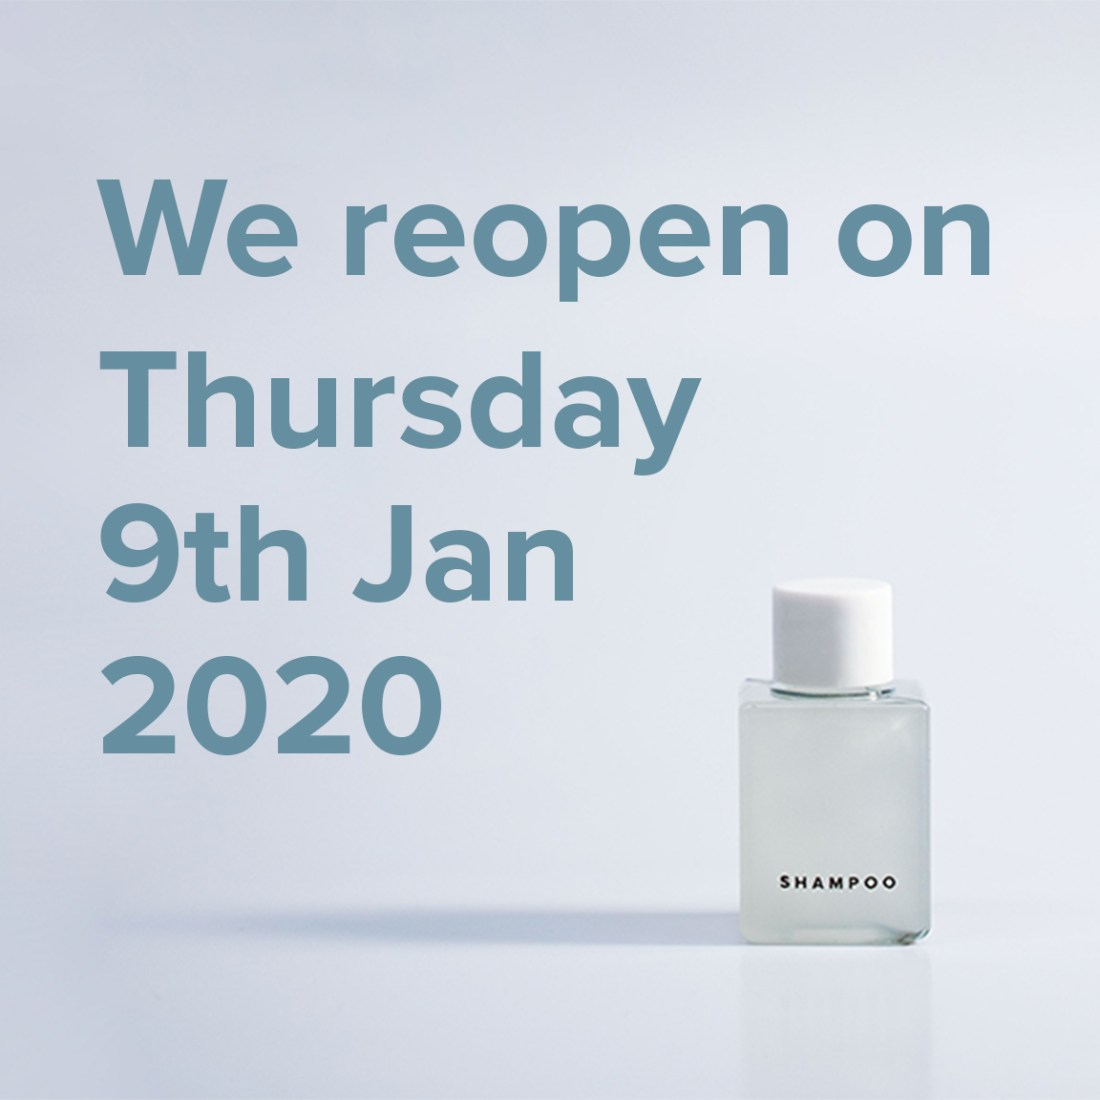 We reopen on 9th Jan 2020